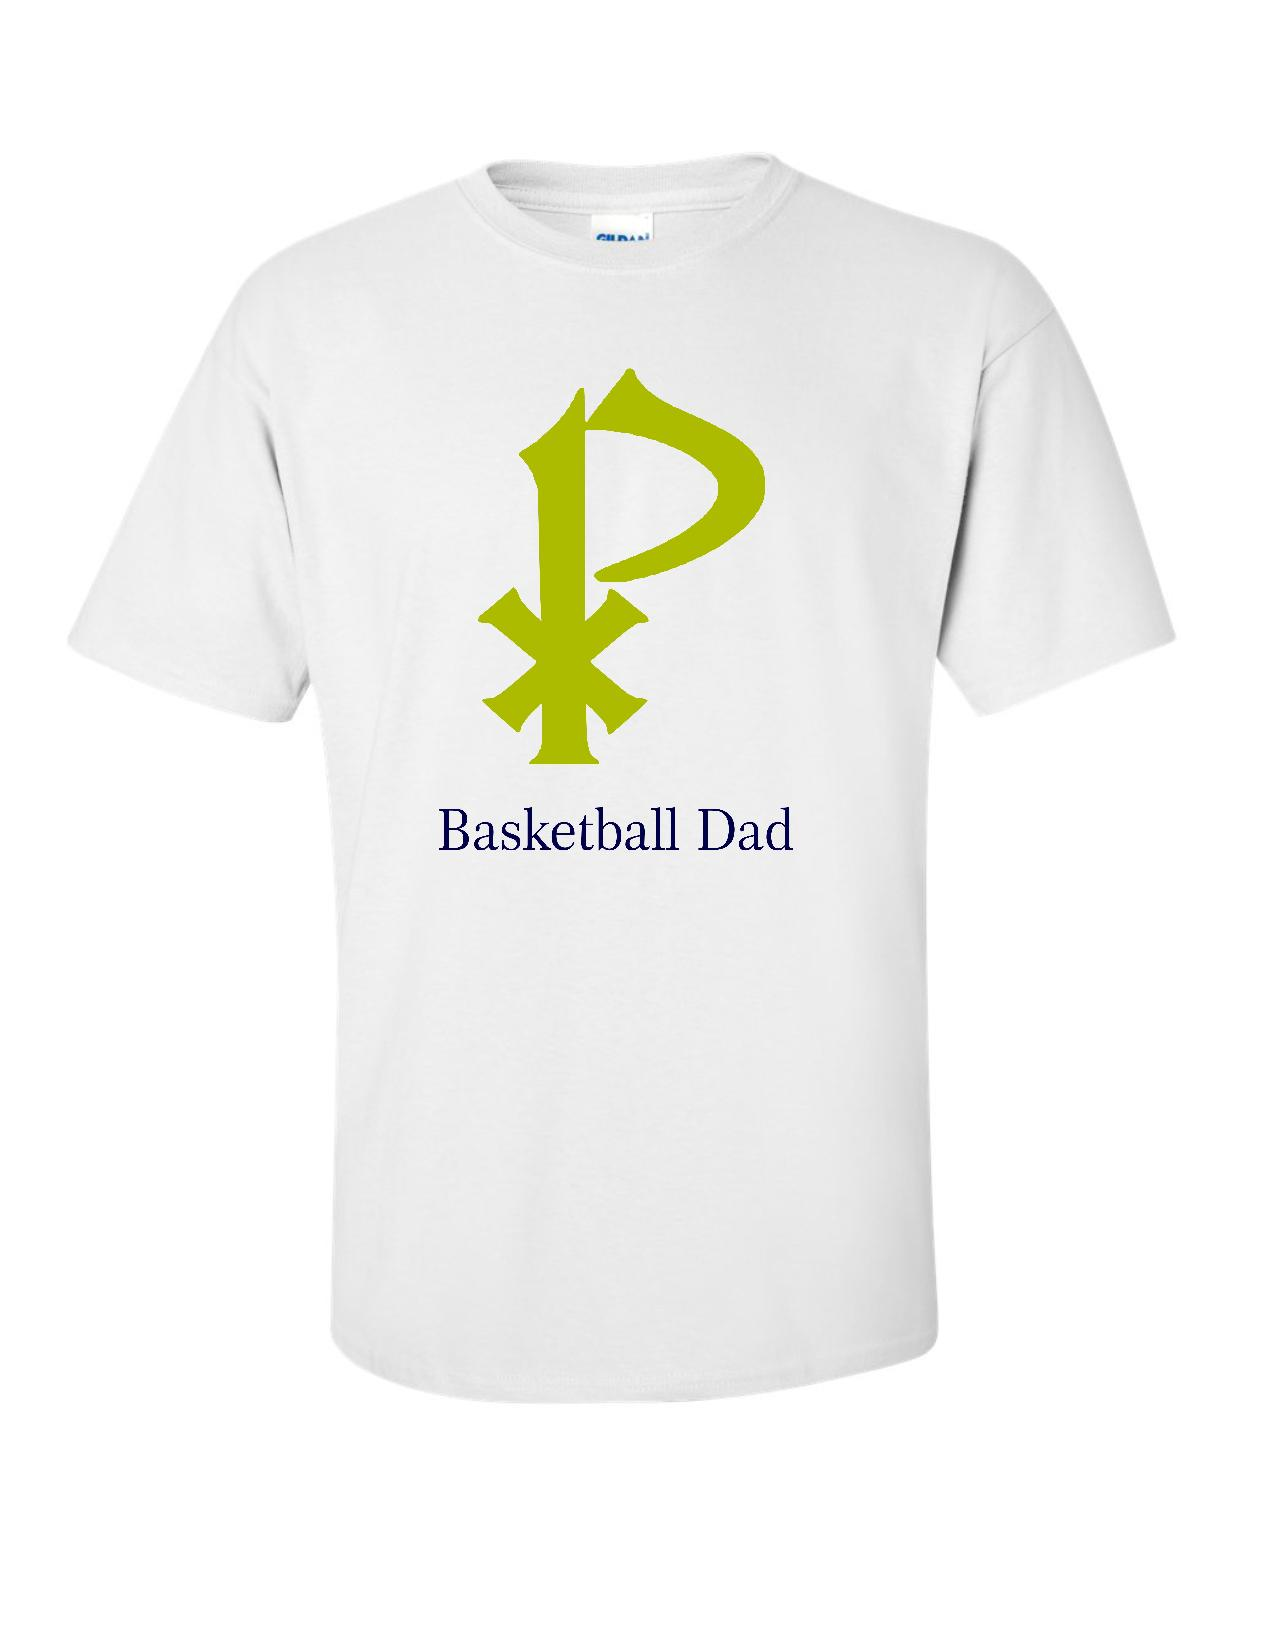 St. Pius Basketball Dad Tee